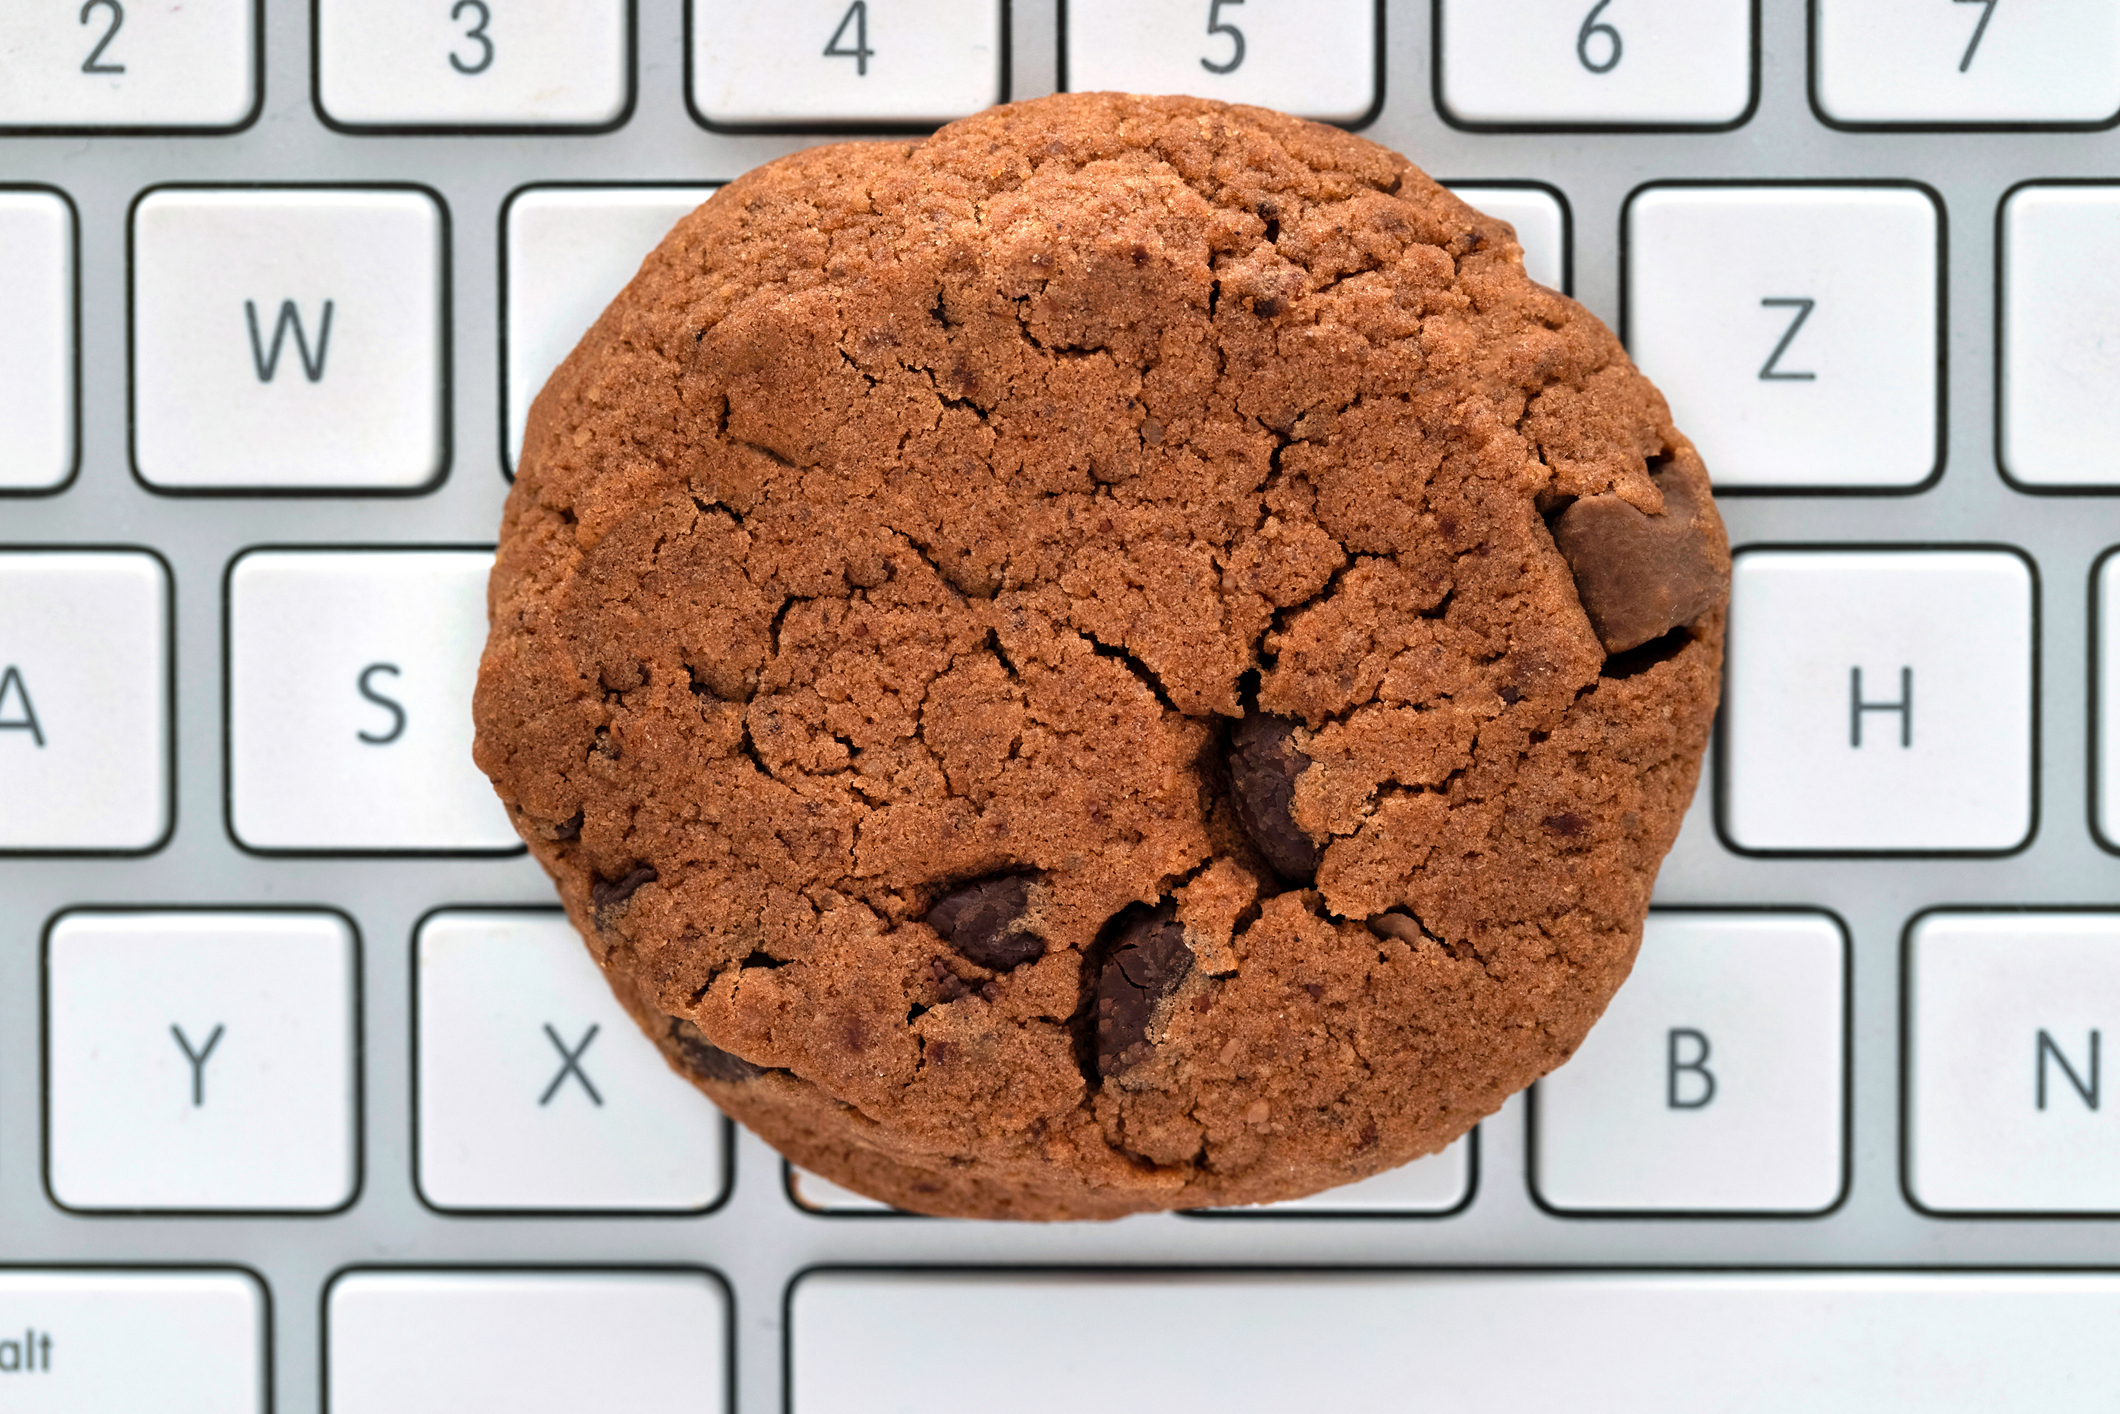 Brown cookie lies on a computer keyboard, as a symbol for data collection in the browser